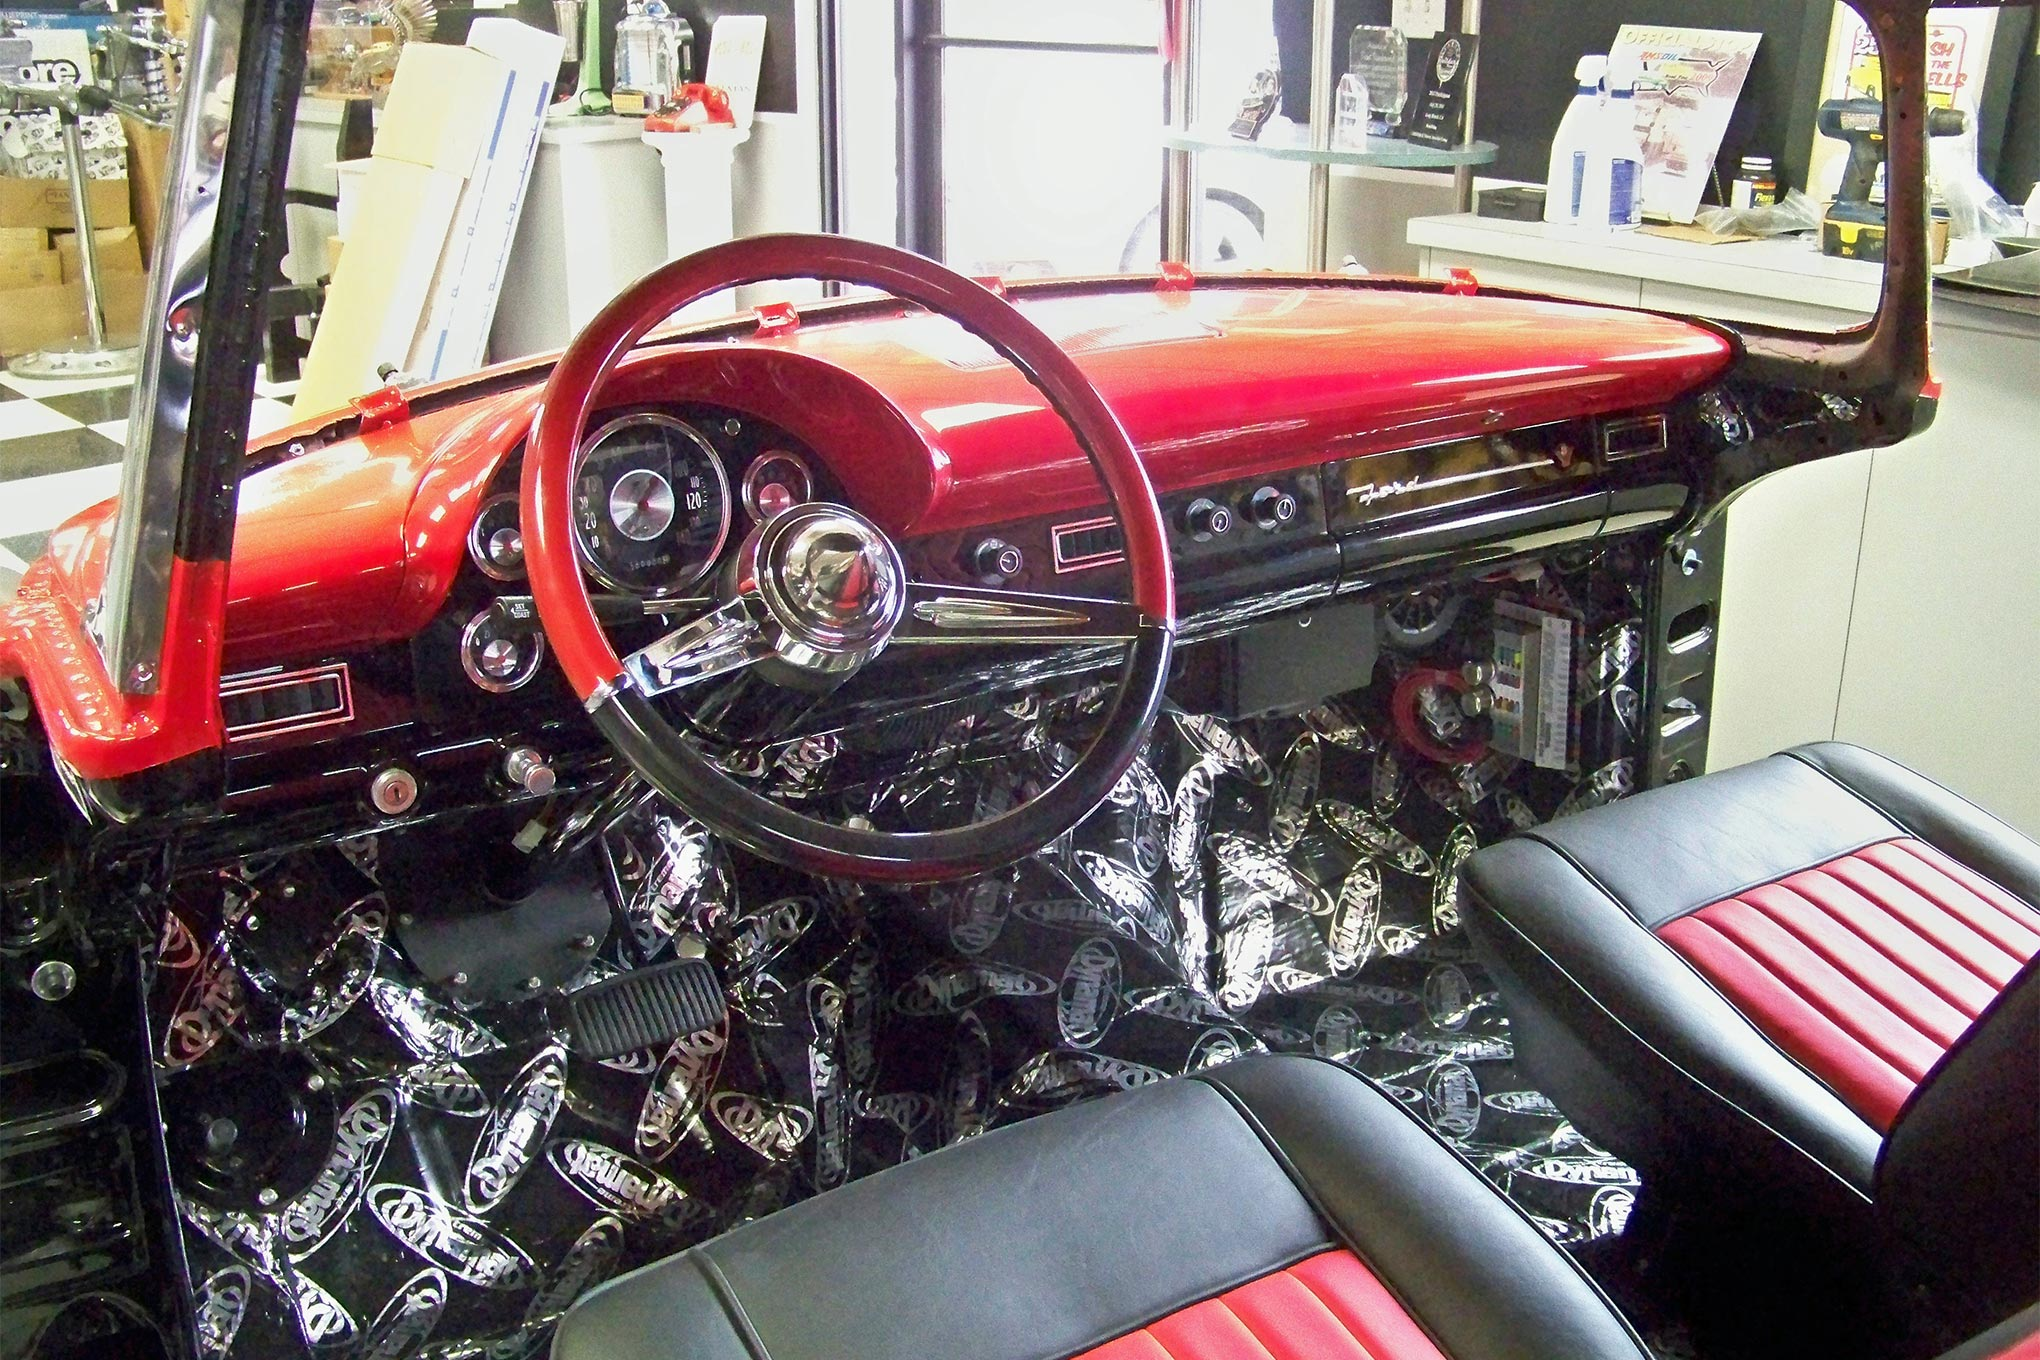 Mustang Stereo Wiring Diagram 1956 Ford Fairlane Victoria Dashboard Gets The Custom